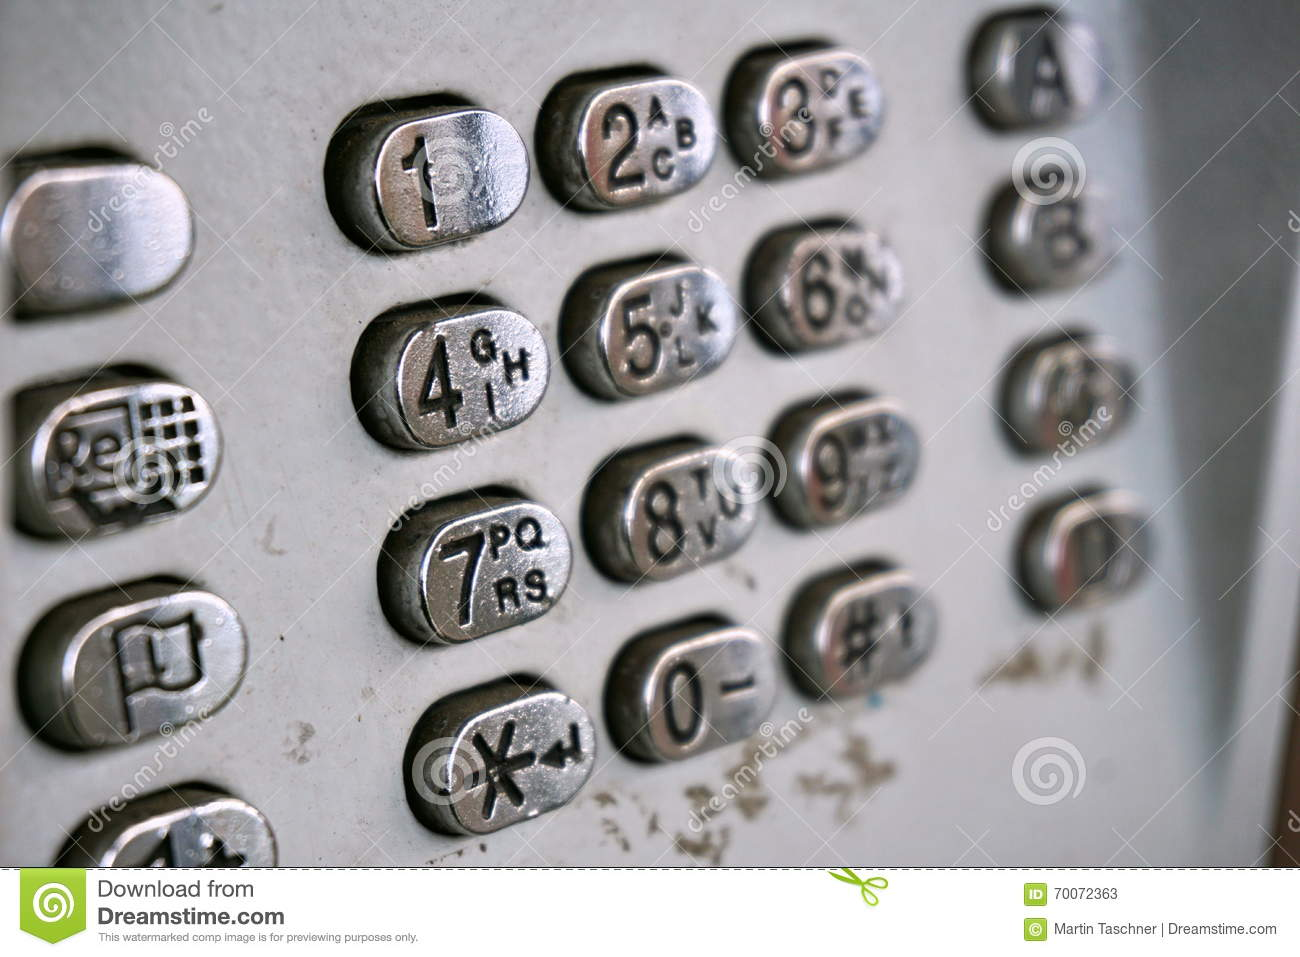 metal telephone dial in the public phone booth with black letters and numbers on the silver